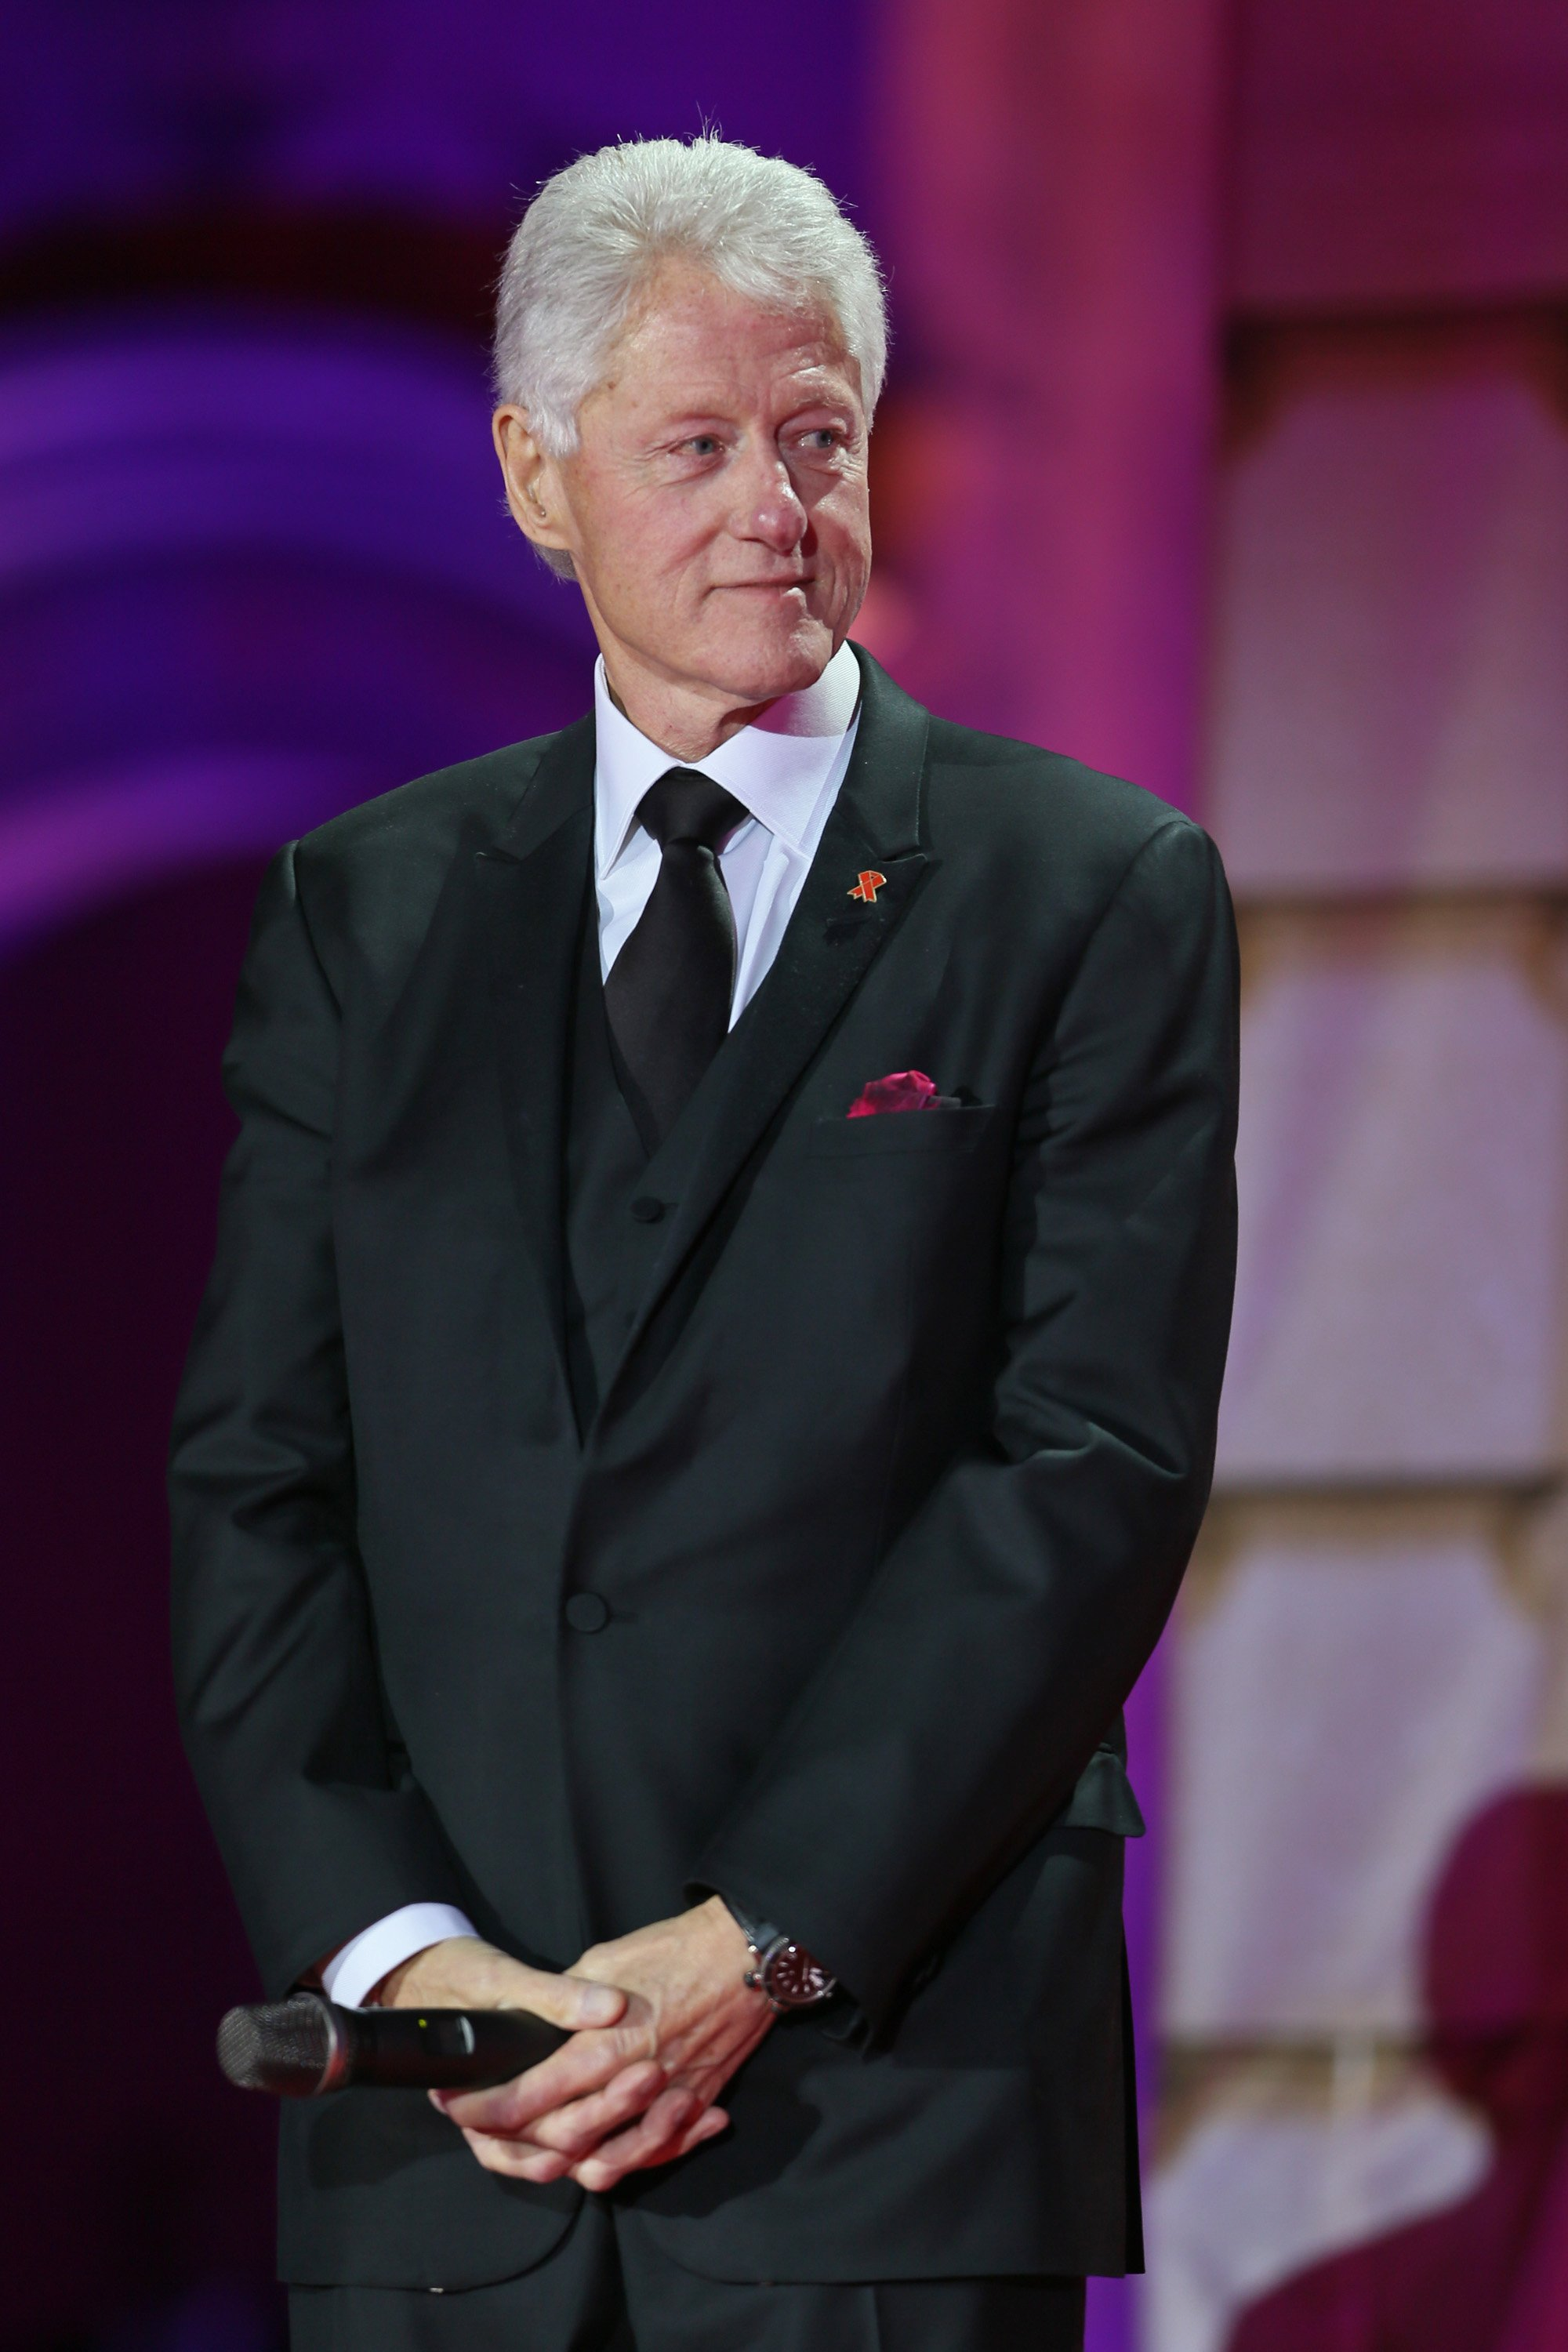 Bill Clinton attends the 'Life Ball 2013 - Show' on May 25, 2013, in Vienna, Austria.   Source: Getty Images.